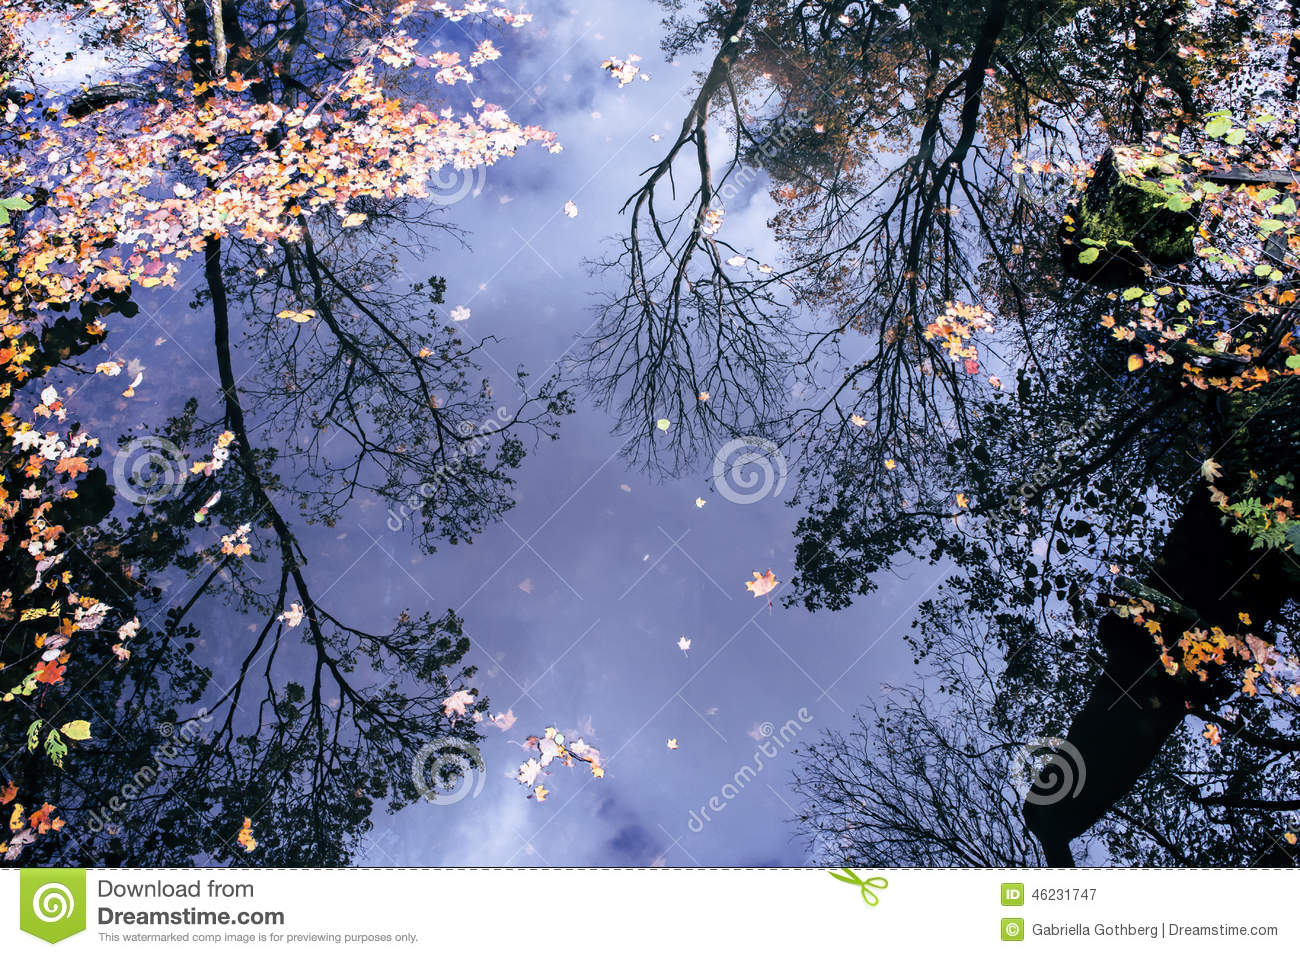 Reflection of autumn trees in water.